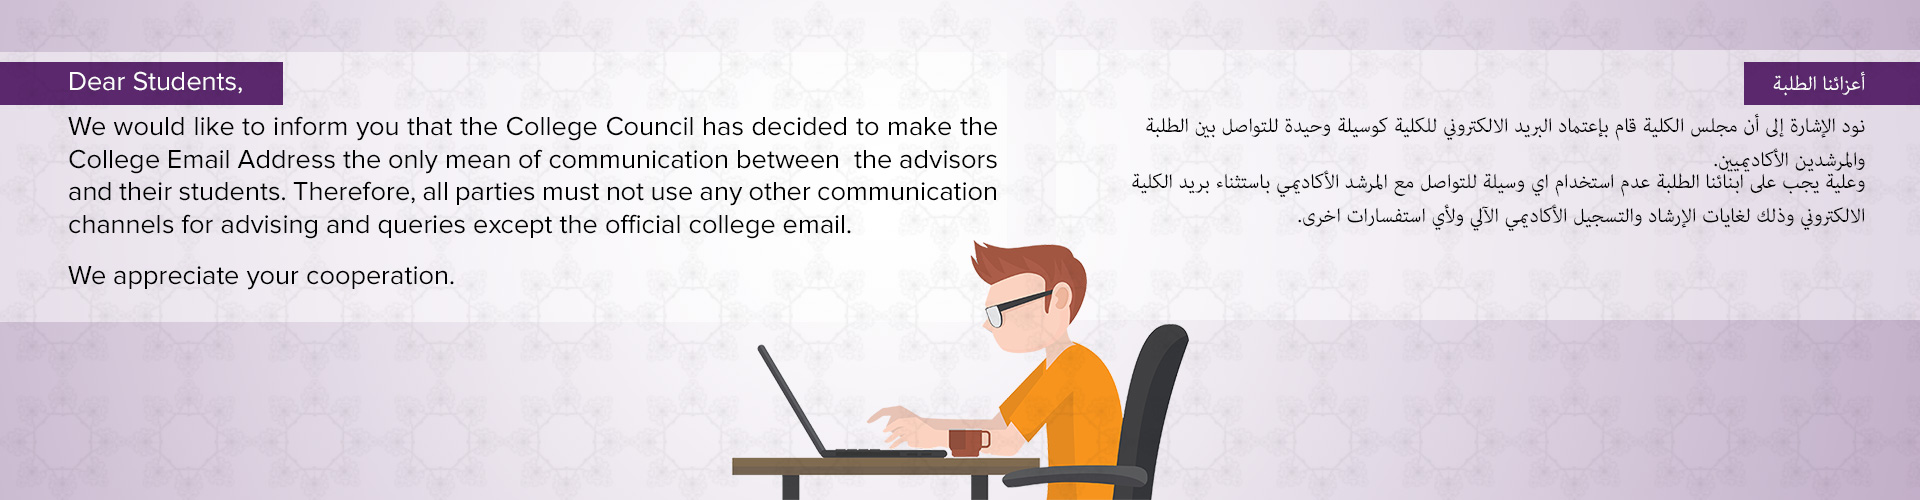 College Council - Use of Official Email